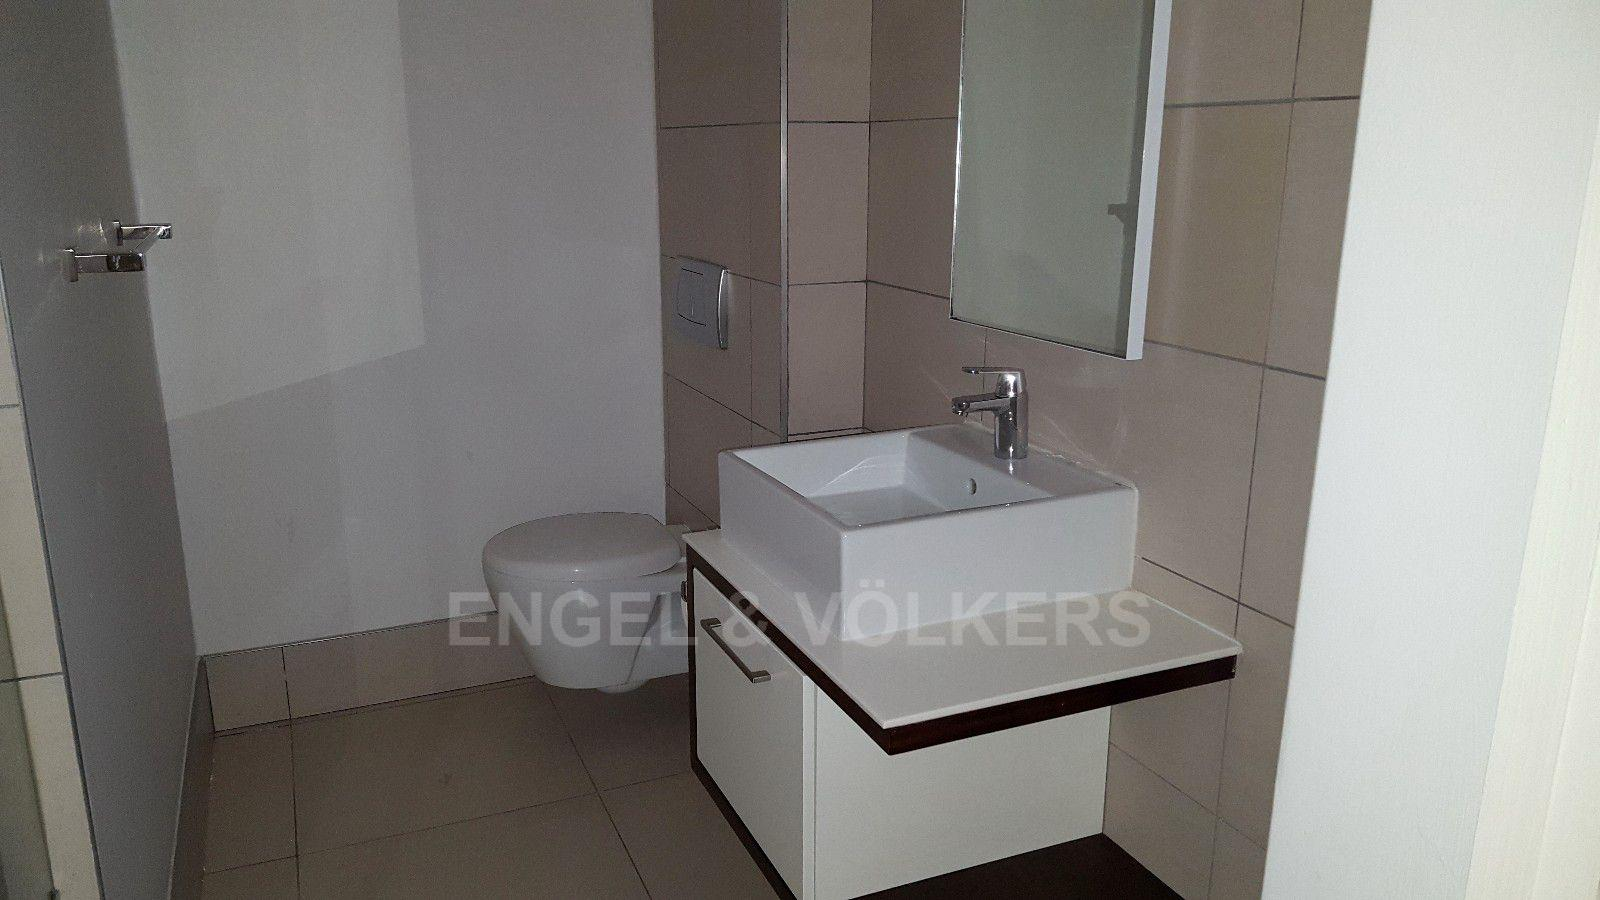 Umhlanga Rocks for sale property. Ref No: 13400359. Picture no 10